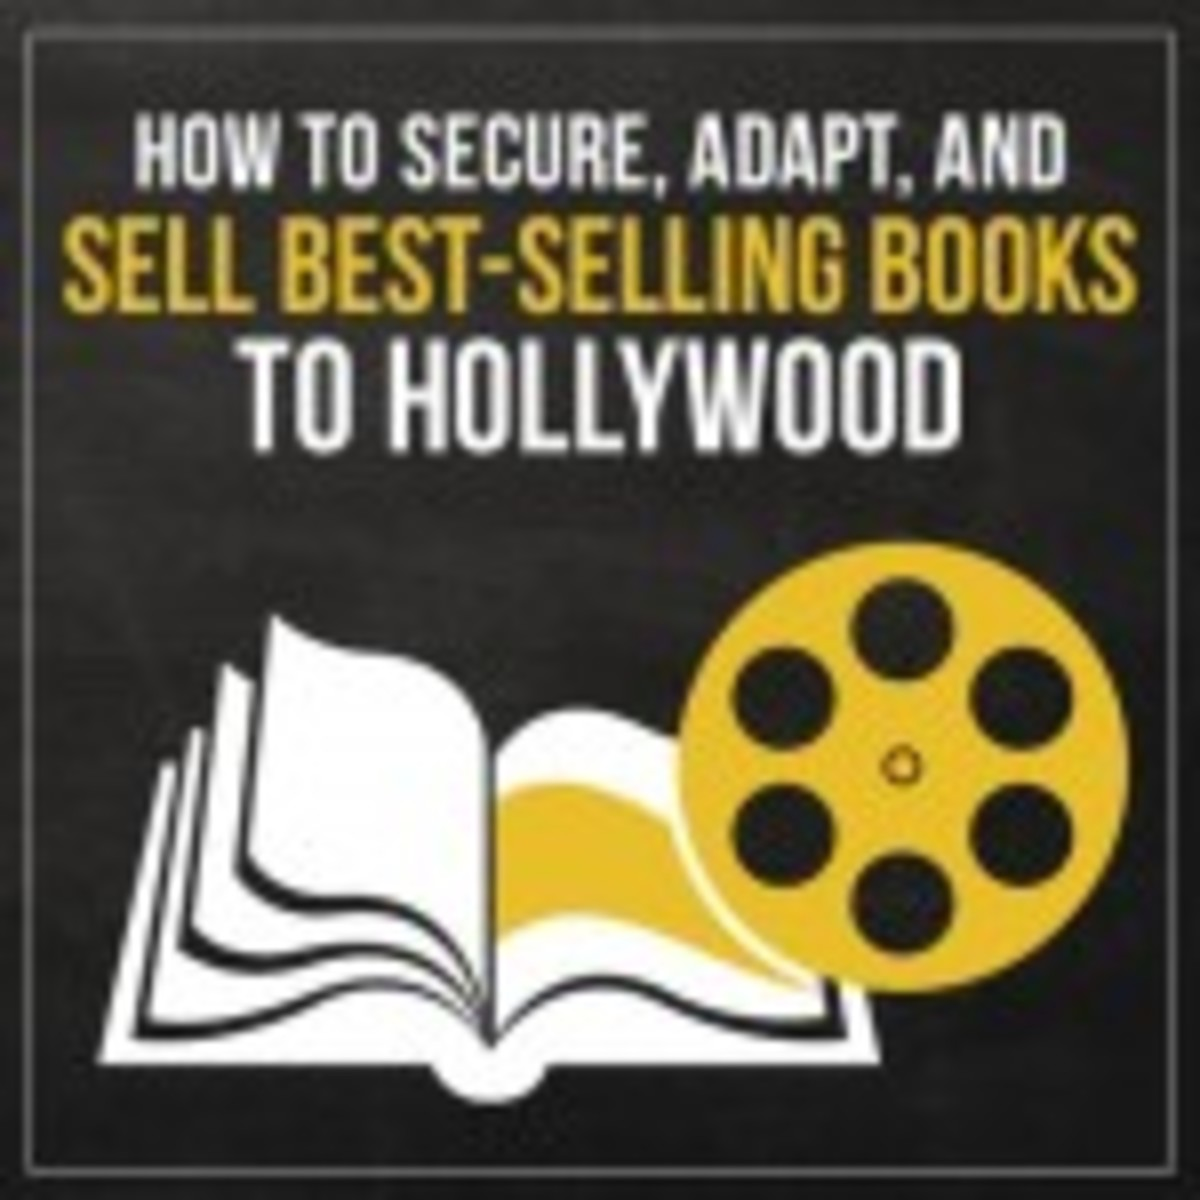 How to Secure, Adapt and Sell Best-Selling Books to Hollywood